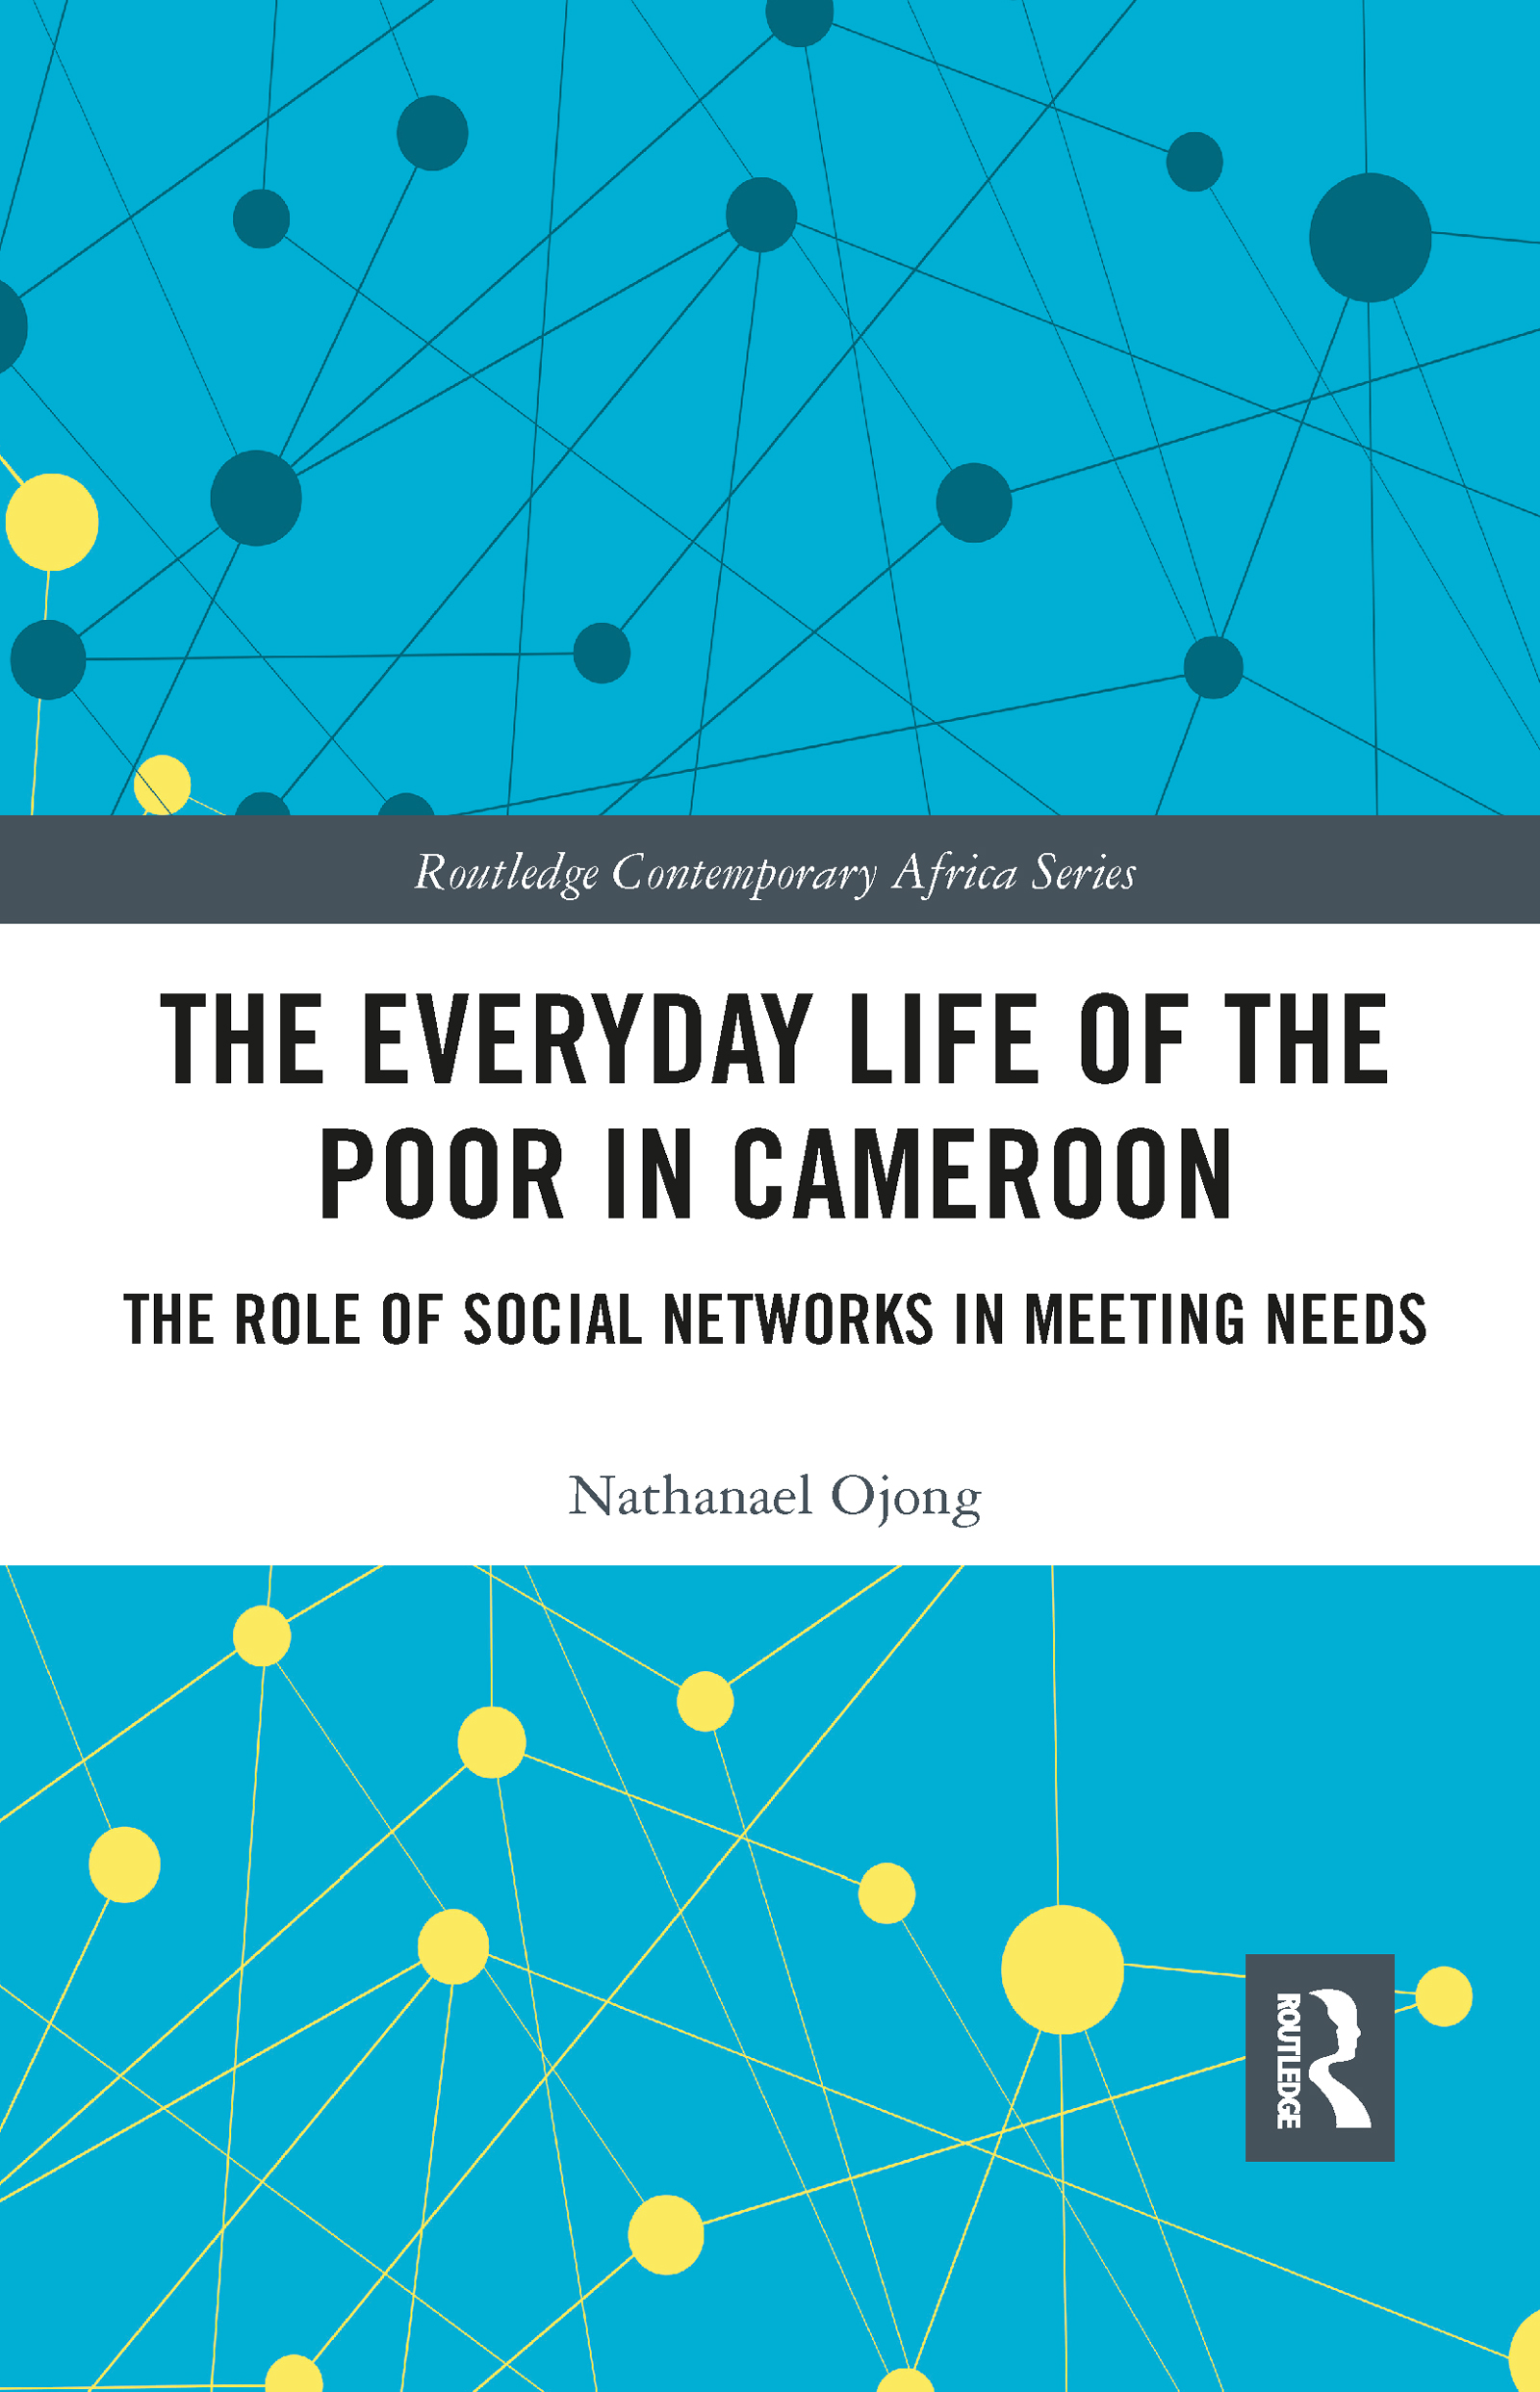 The Everyday Life of the Poor in Cameroon